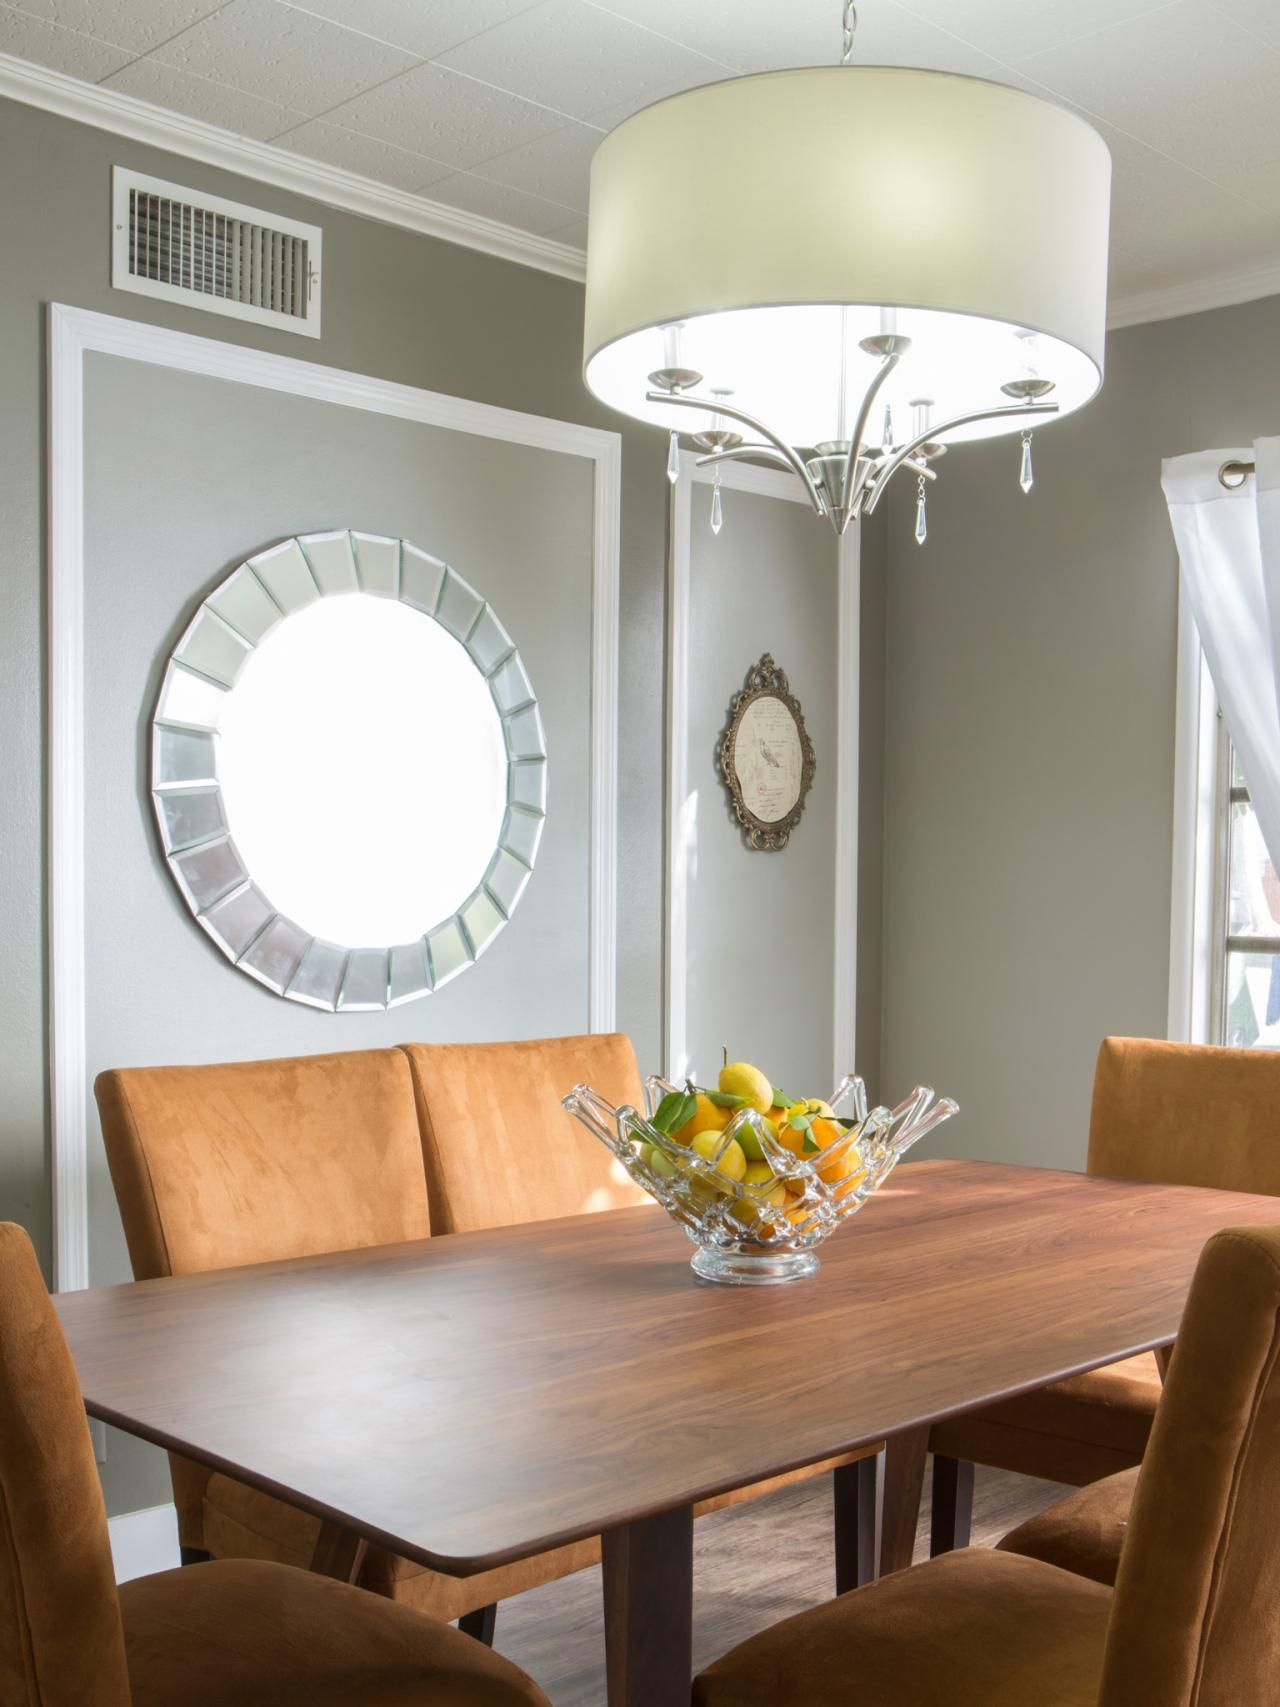 A Transitional Dining Room Features White Crown Molding And Wall Perfect Complement To